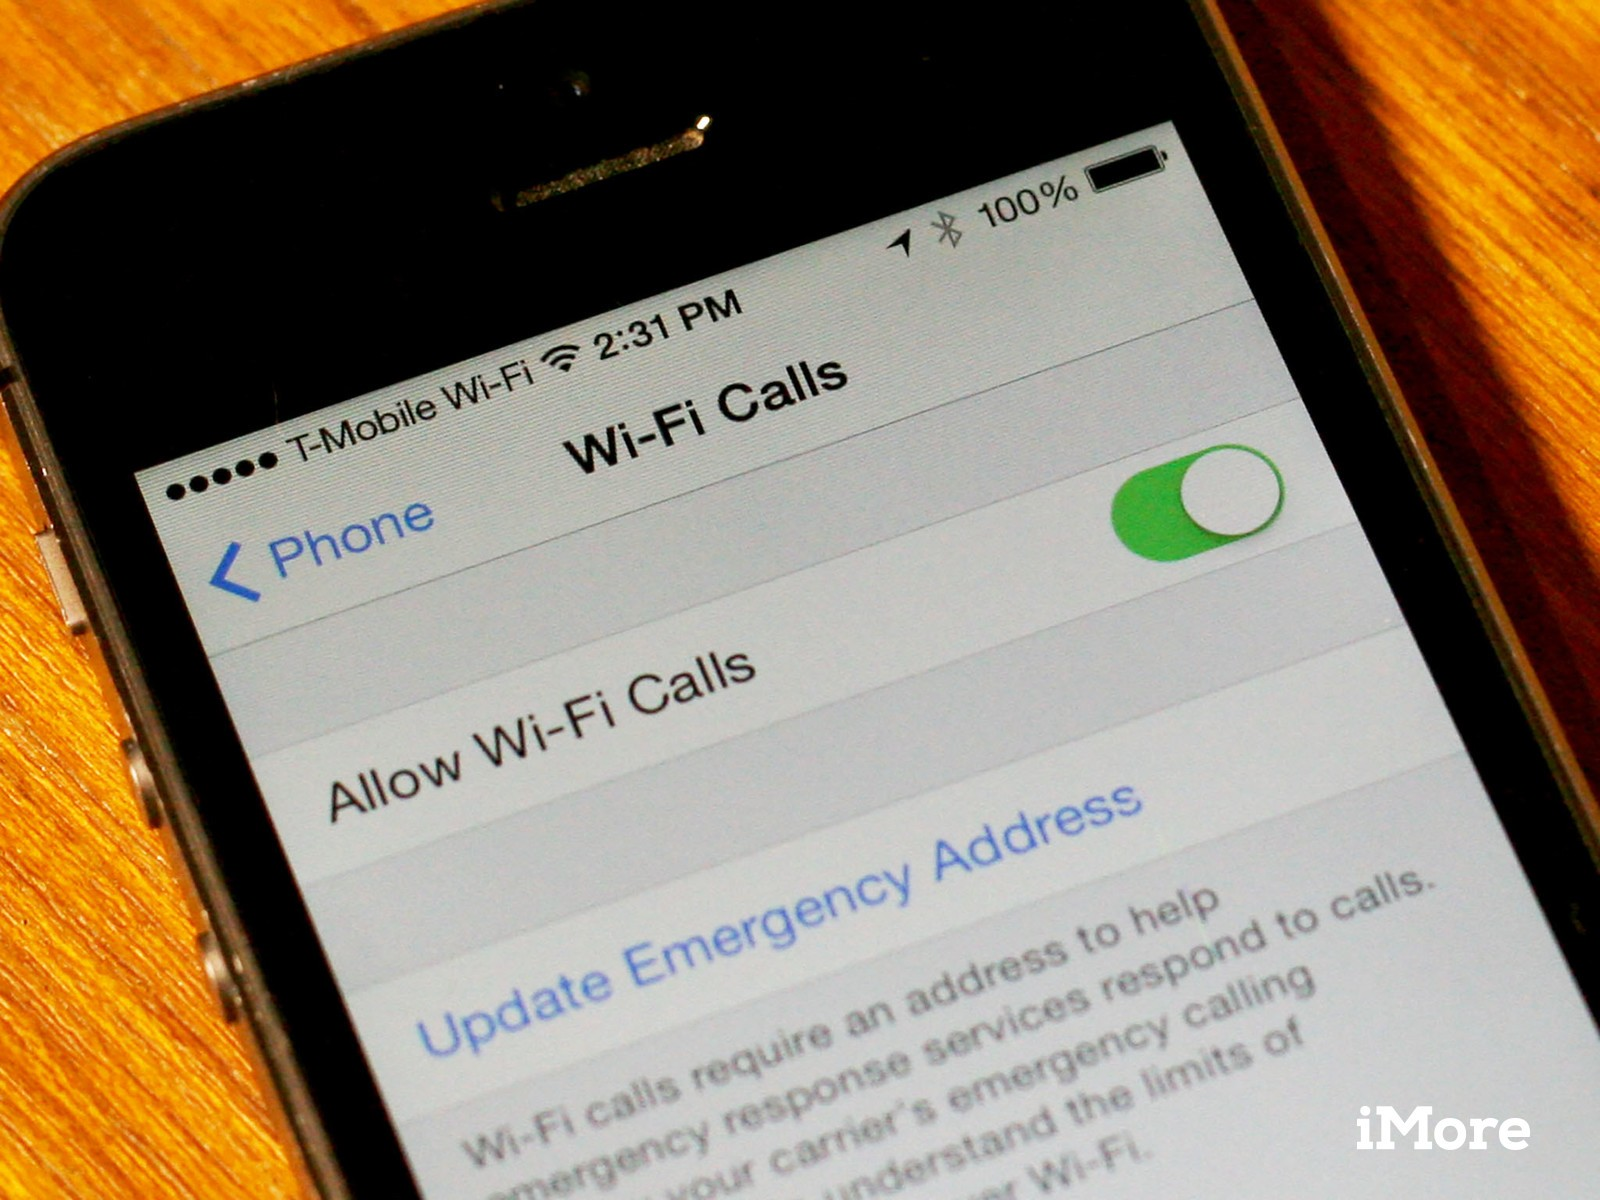 Why doesn't Wi-Fi calling work on the iPhone 5?